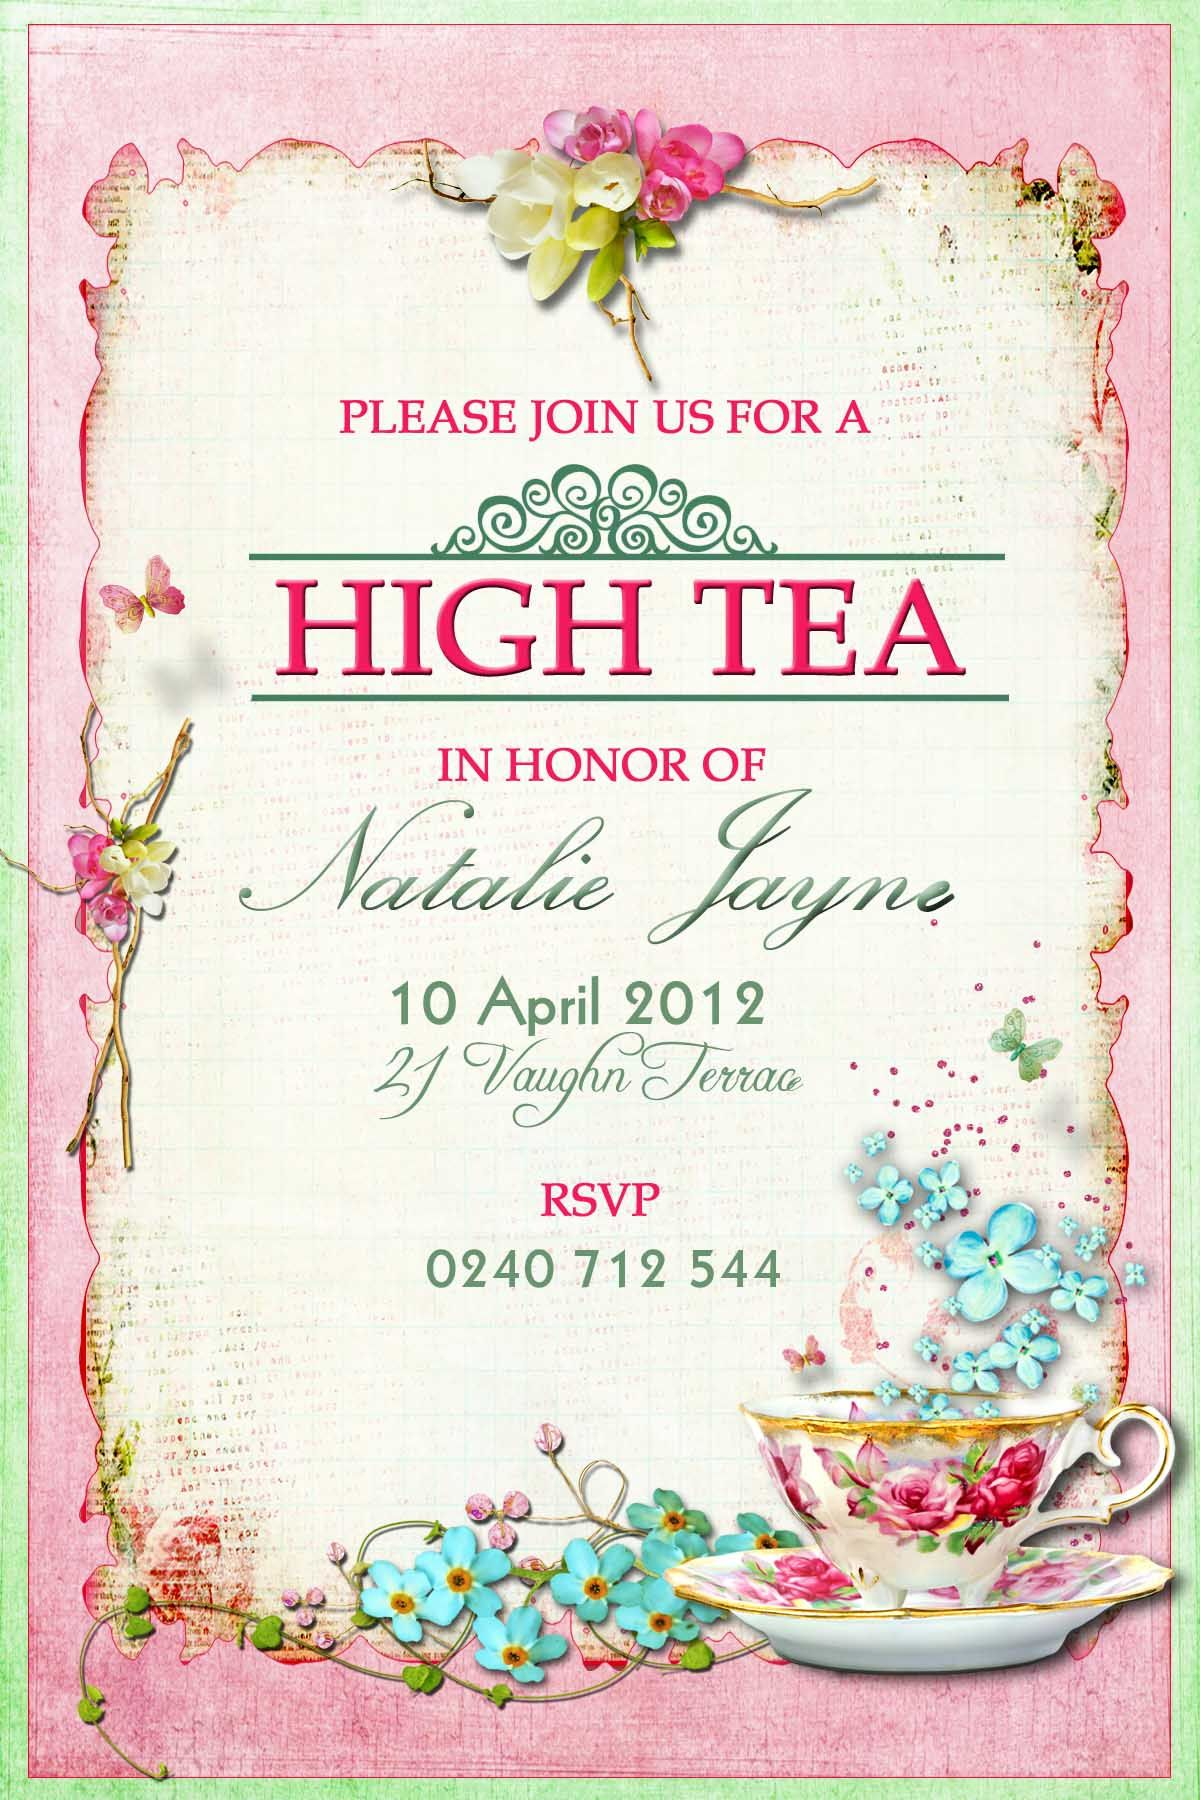 Teapot Party Invitations - Invitation Templates | Teatime ...